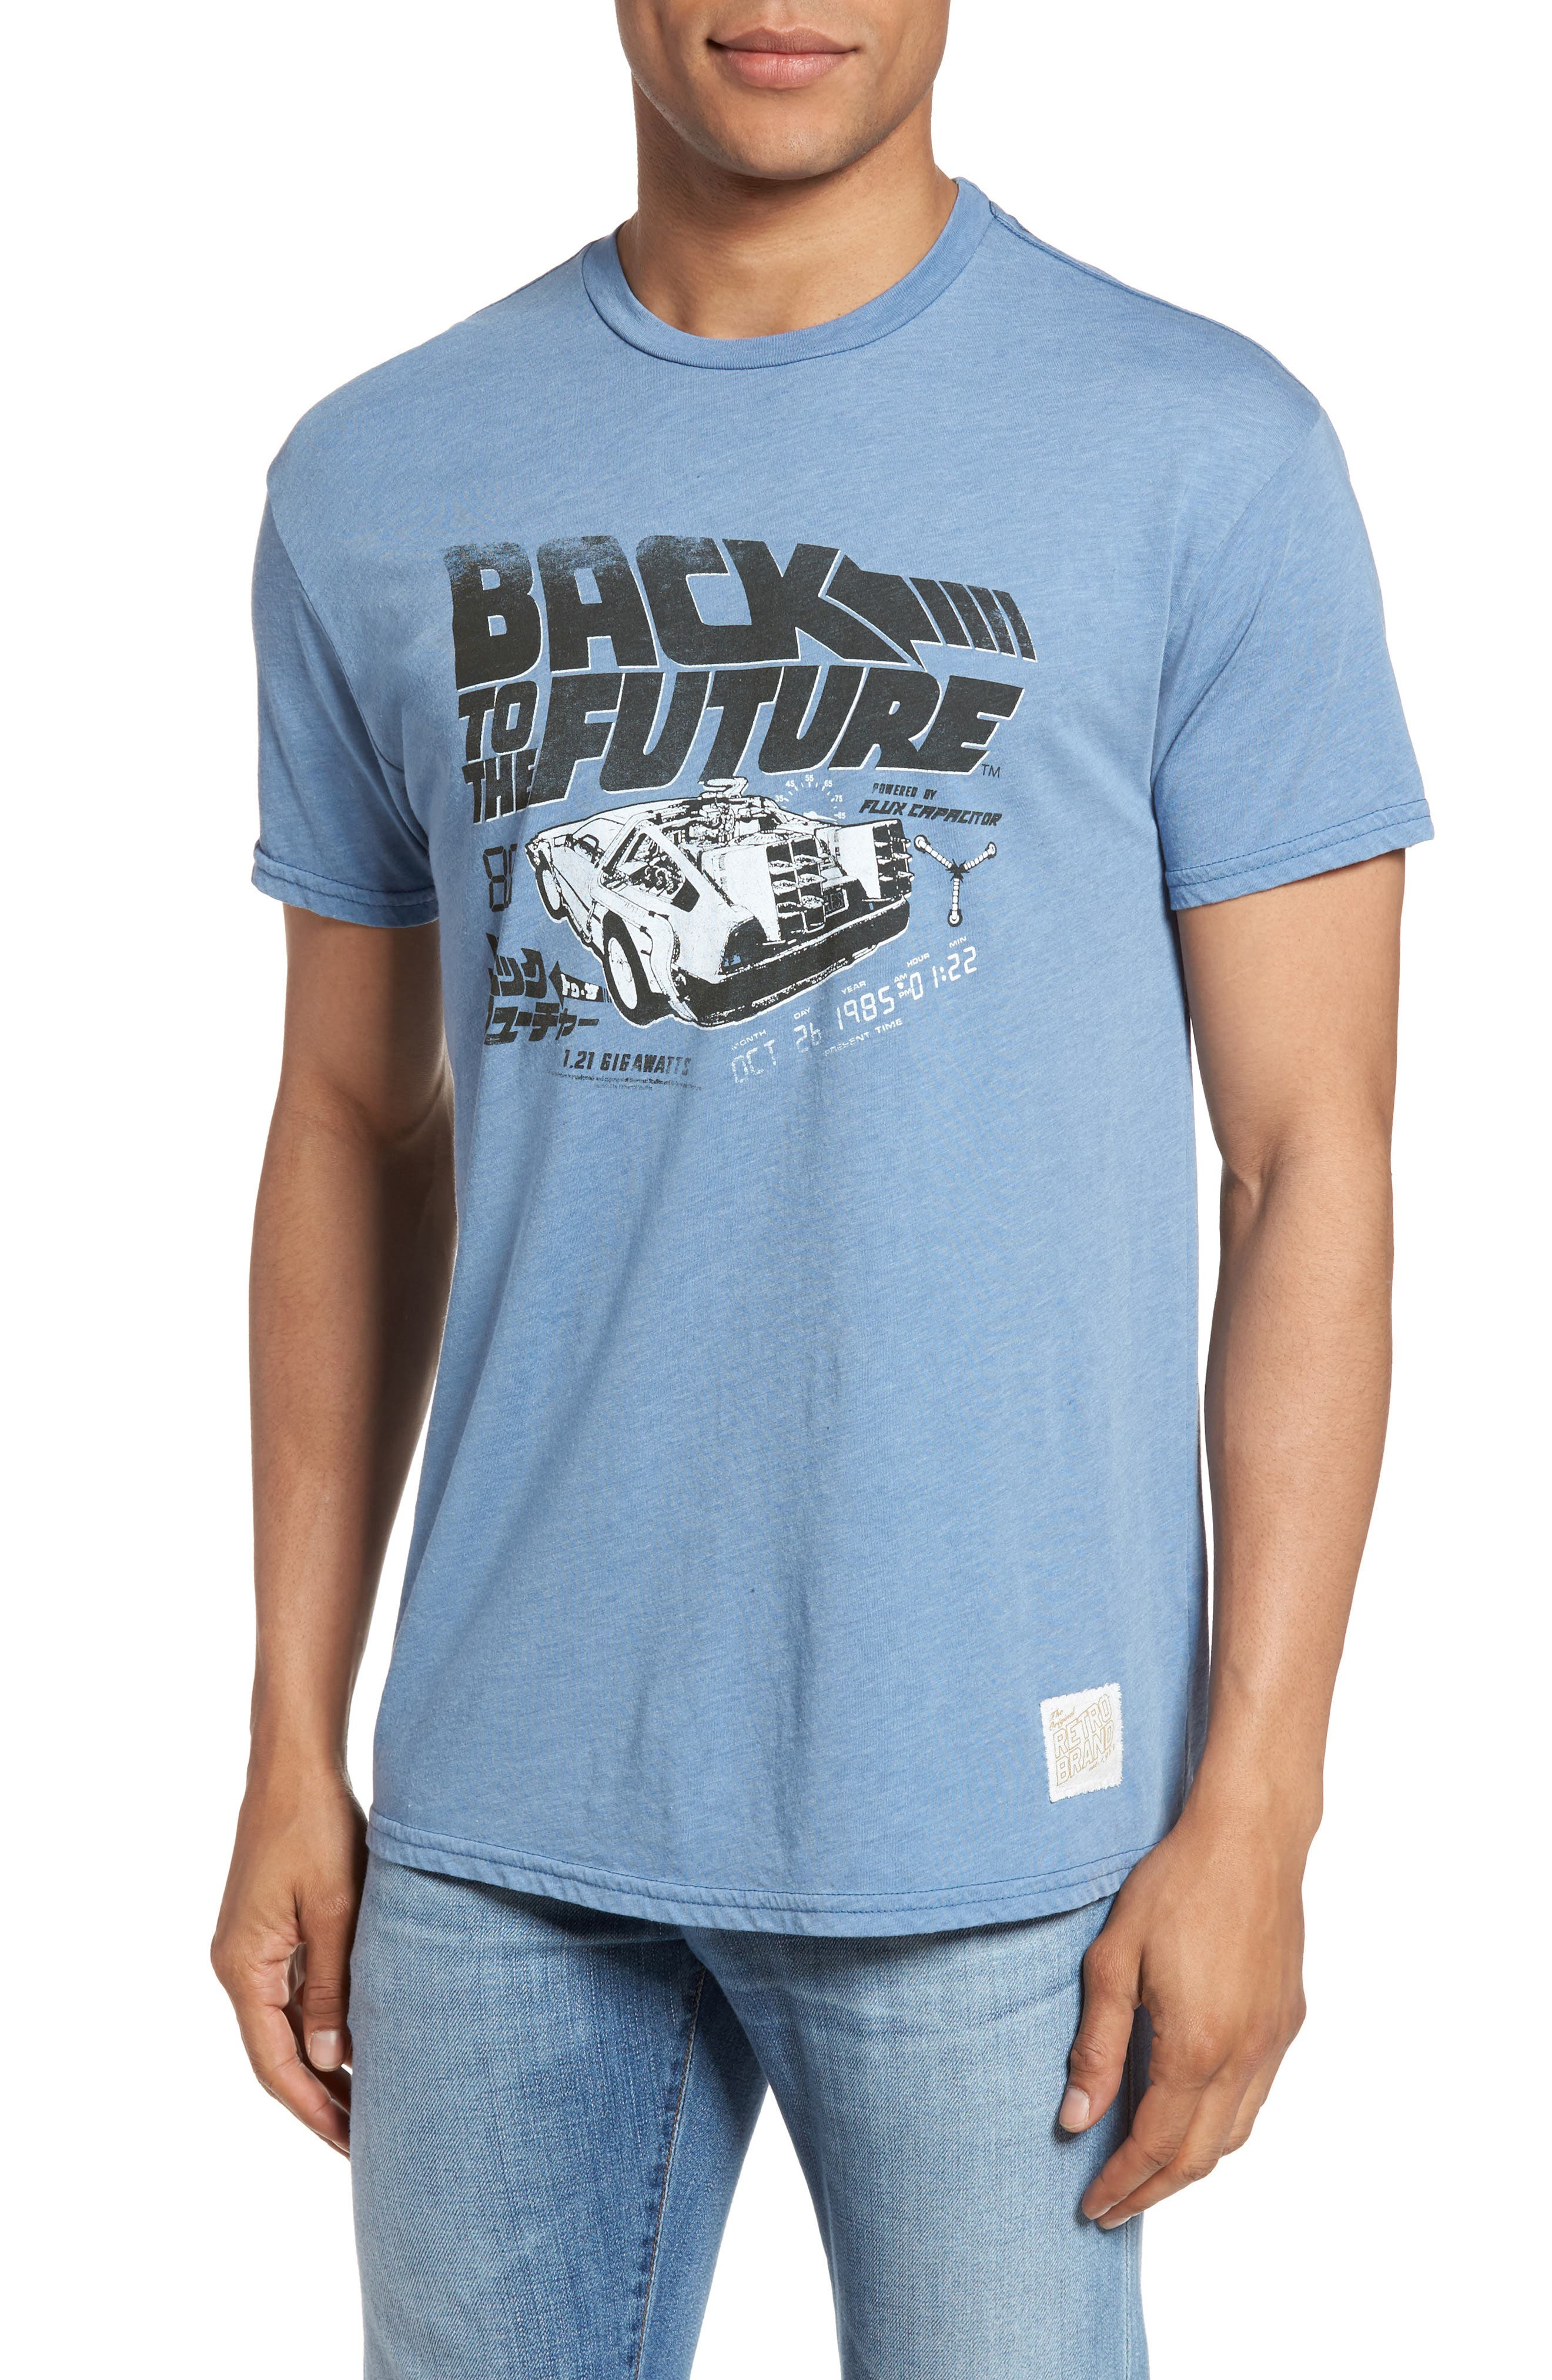 Retro Brand Back to the Future Graphic T-Shirt